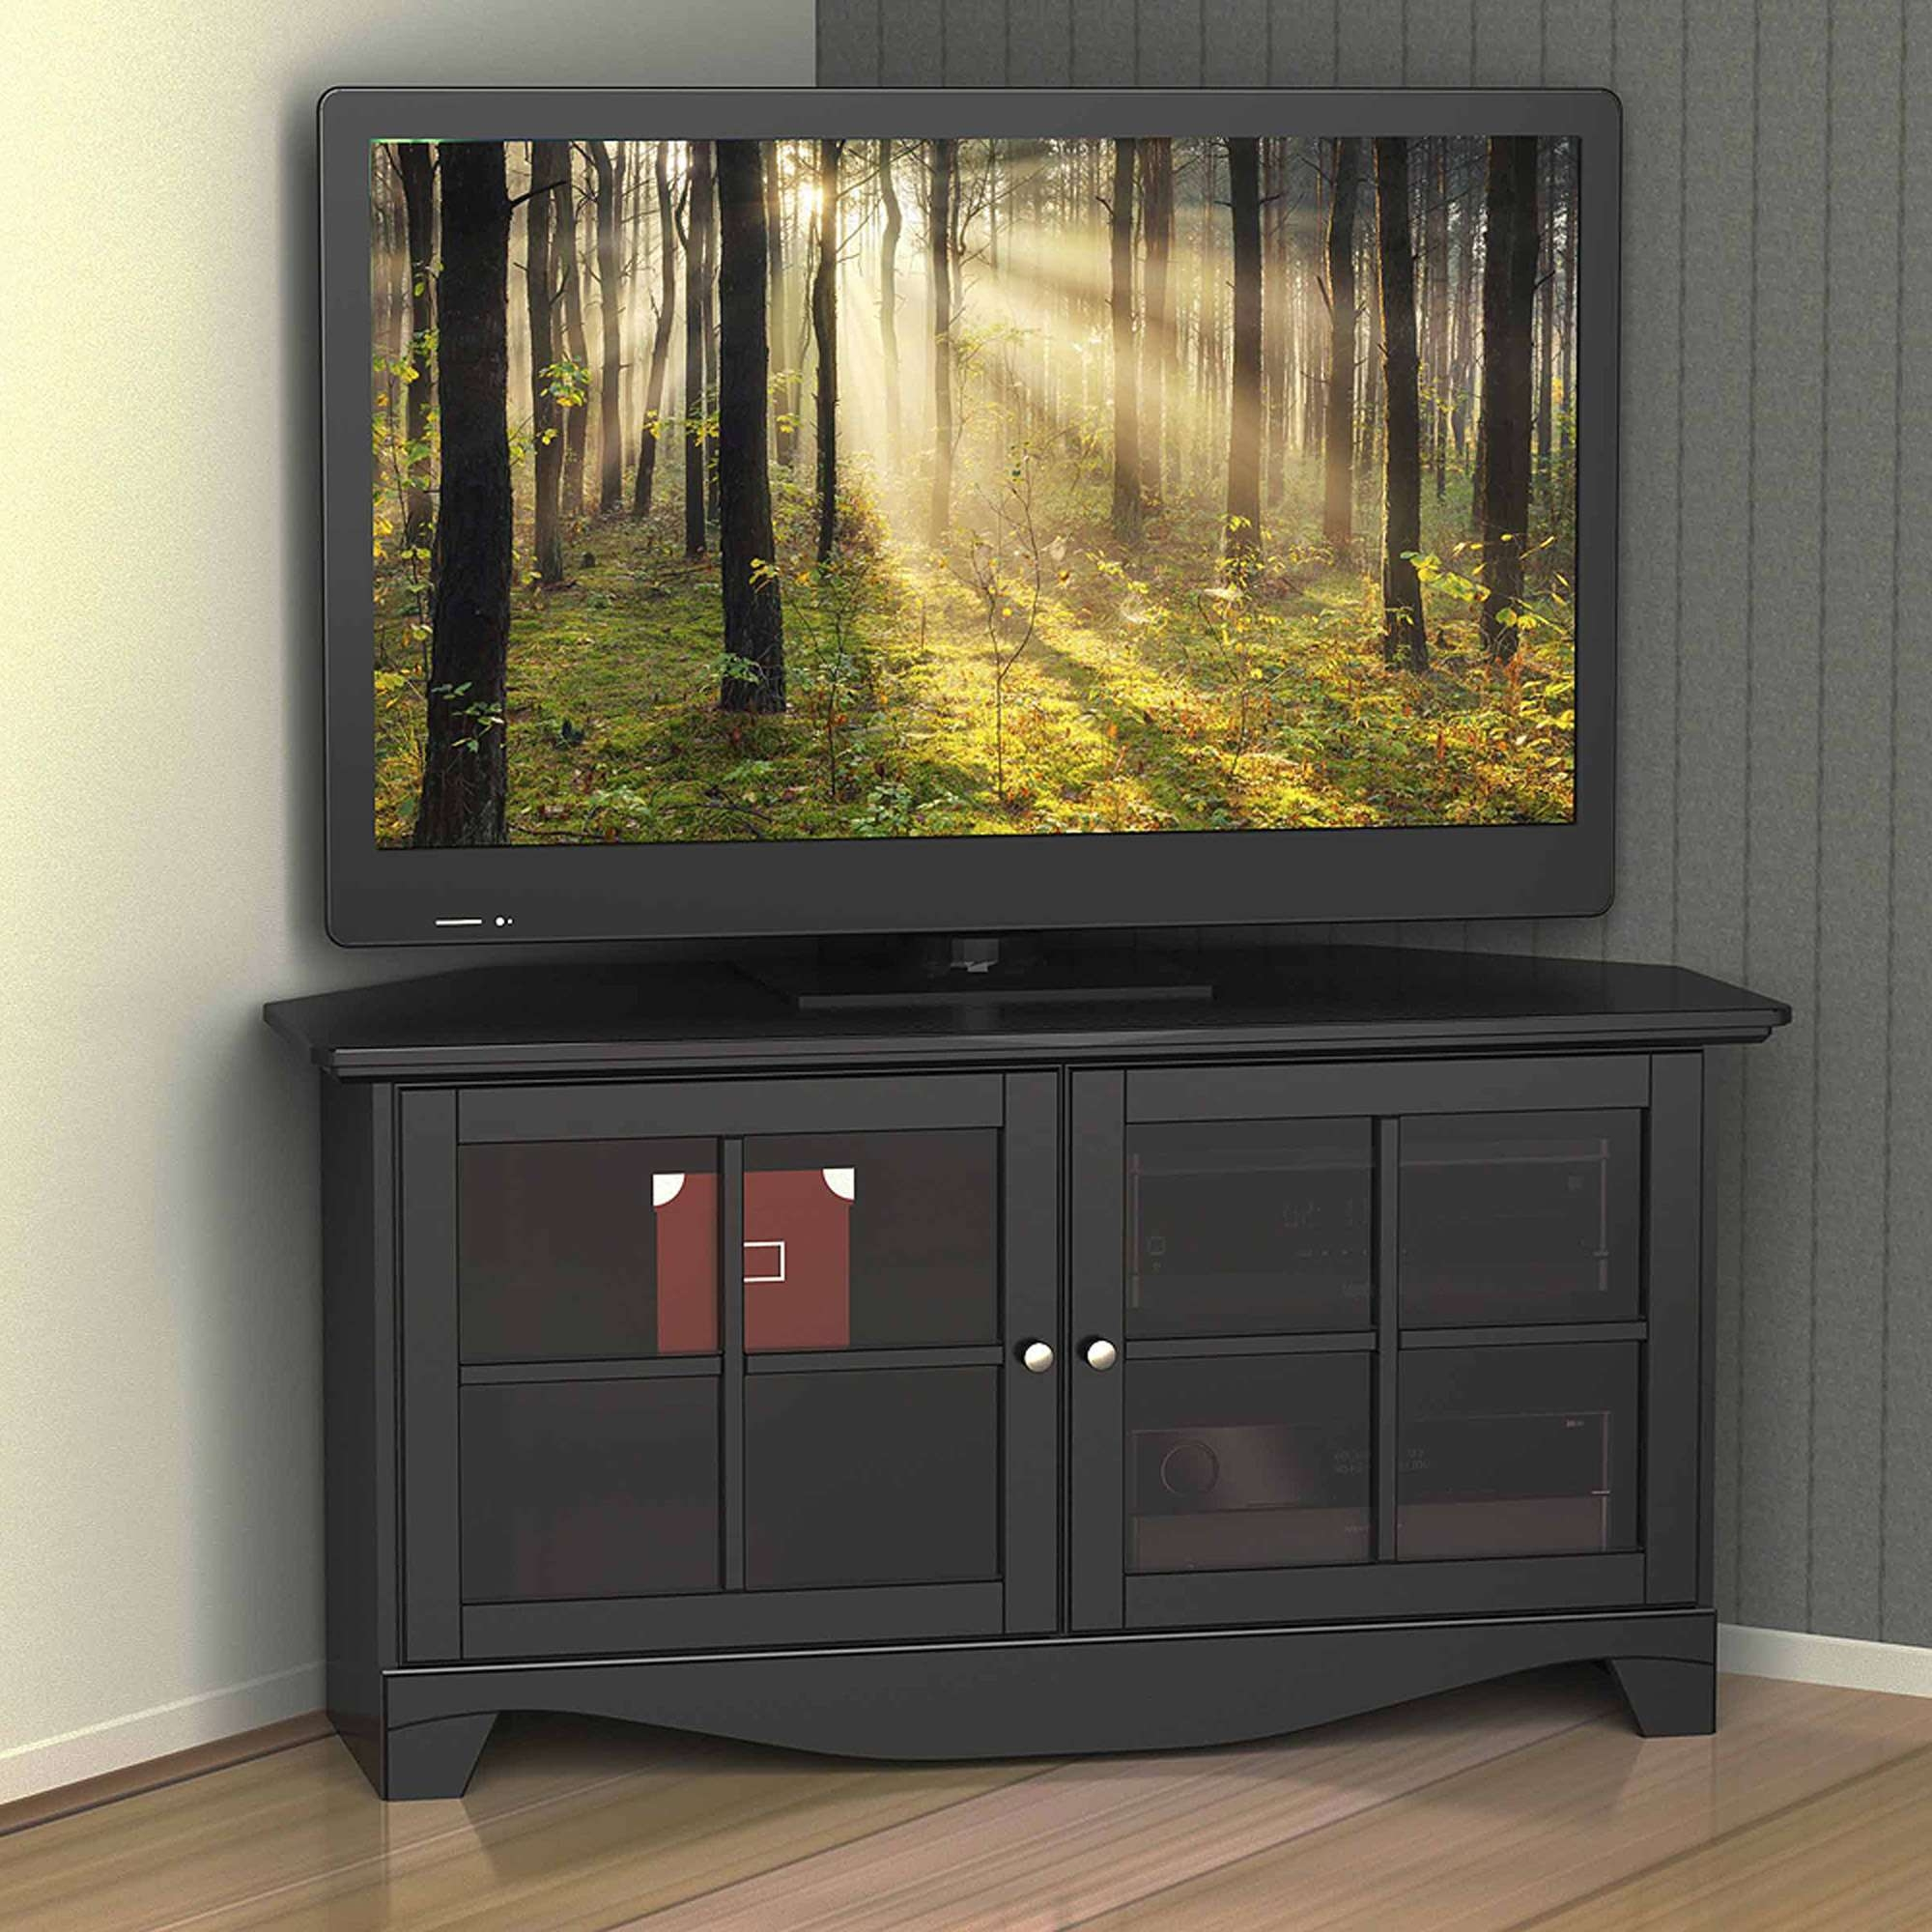 Nexera Pinnacle Black 2 Door Corner Tv Stand For Tvs Up To 49 With Regard To Baby Proof Contemporary Tv Cabinets (View 10 of 20)